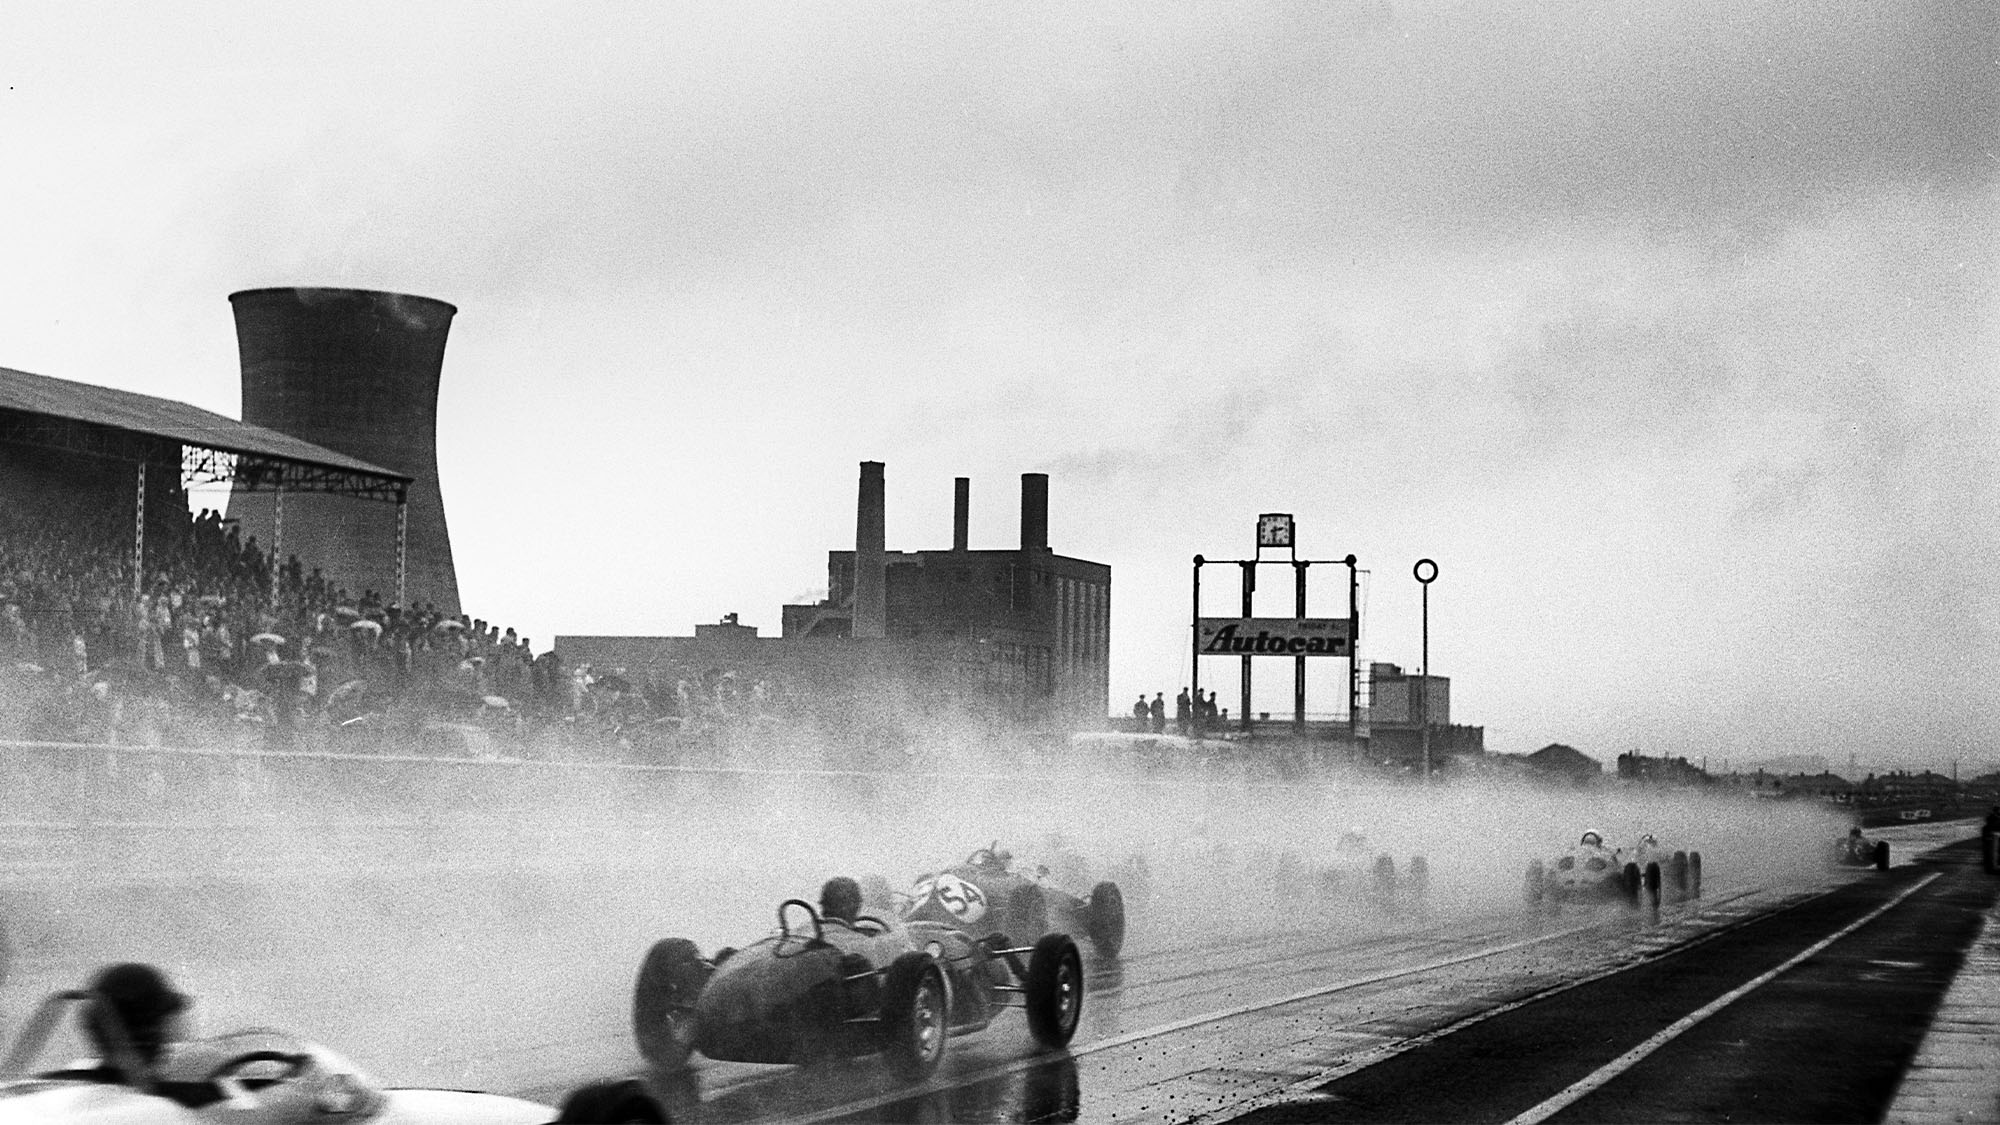 Jack Fairman, Keith Greene, Fergusson-Climax P99, Gilby-Climax, Grand Prix of Great Britain, Aintree, 15 July 1961. (Photo by Bernard Cahier/Getty Images)